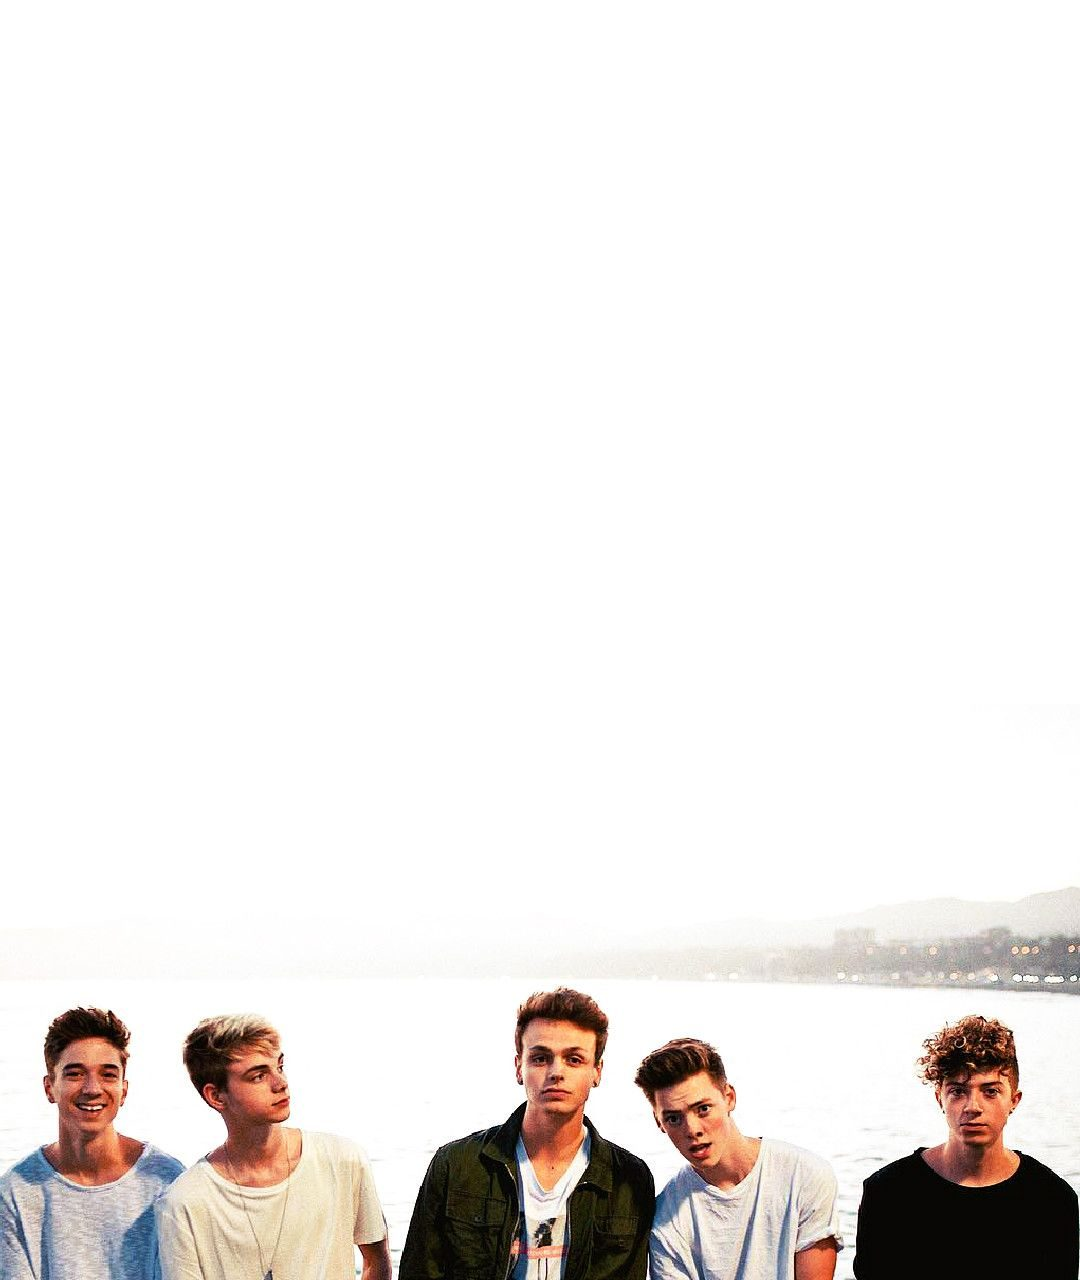 Why Don't We Wallpapers – HD Wallpapers , HD Backgrounds,Tumblr Backgrounds, Images, Pictures